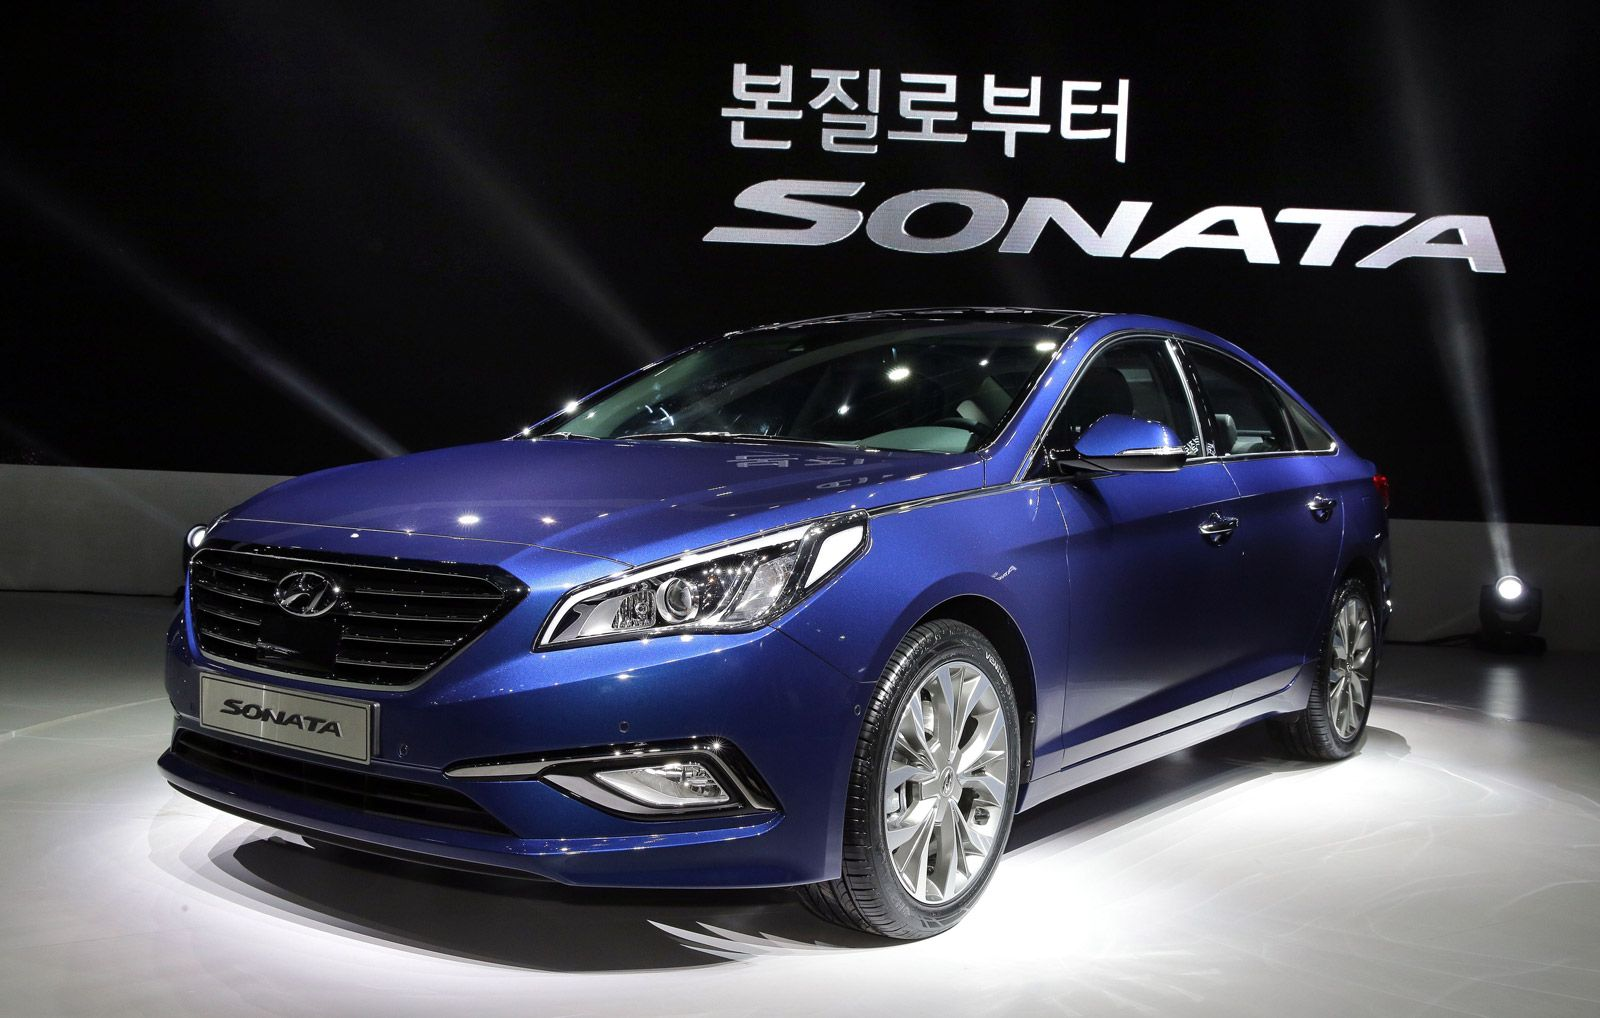 Hyundai reveals all new sonata in south korea